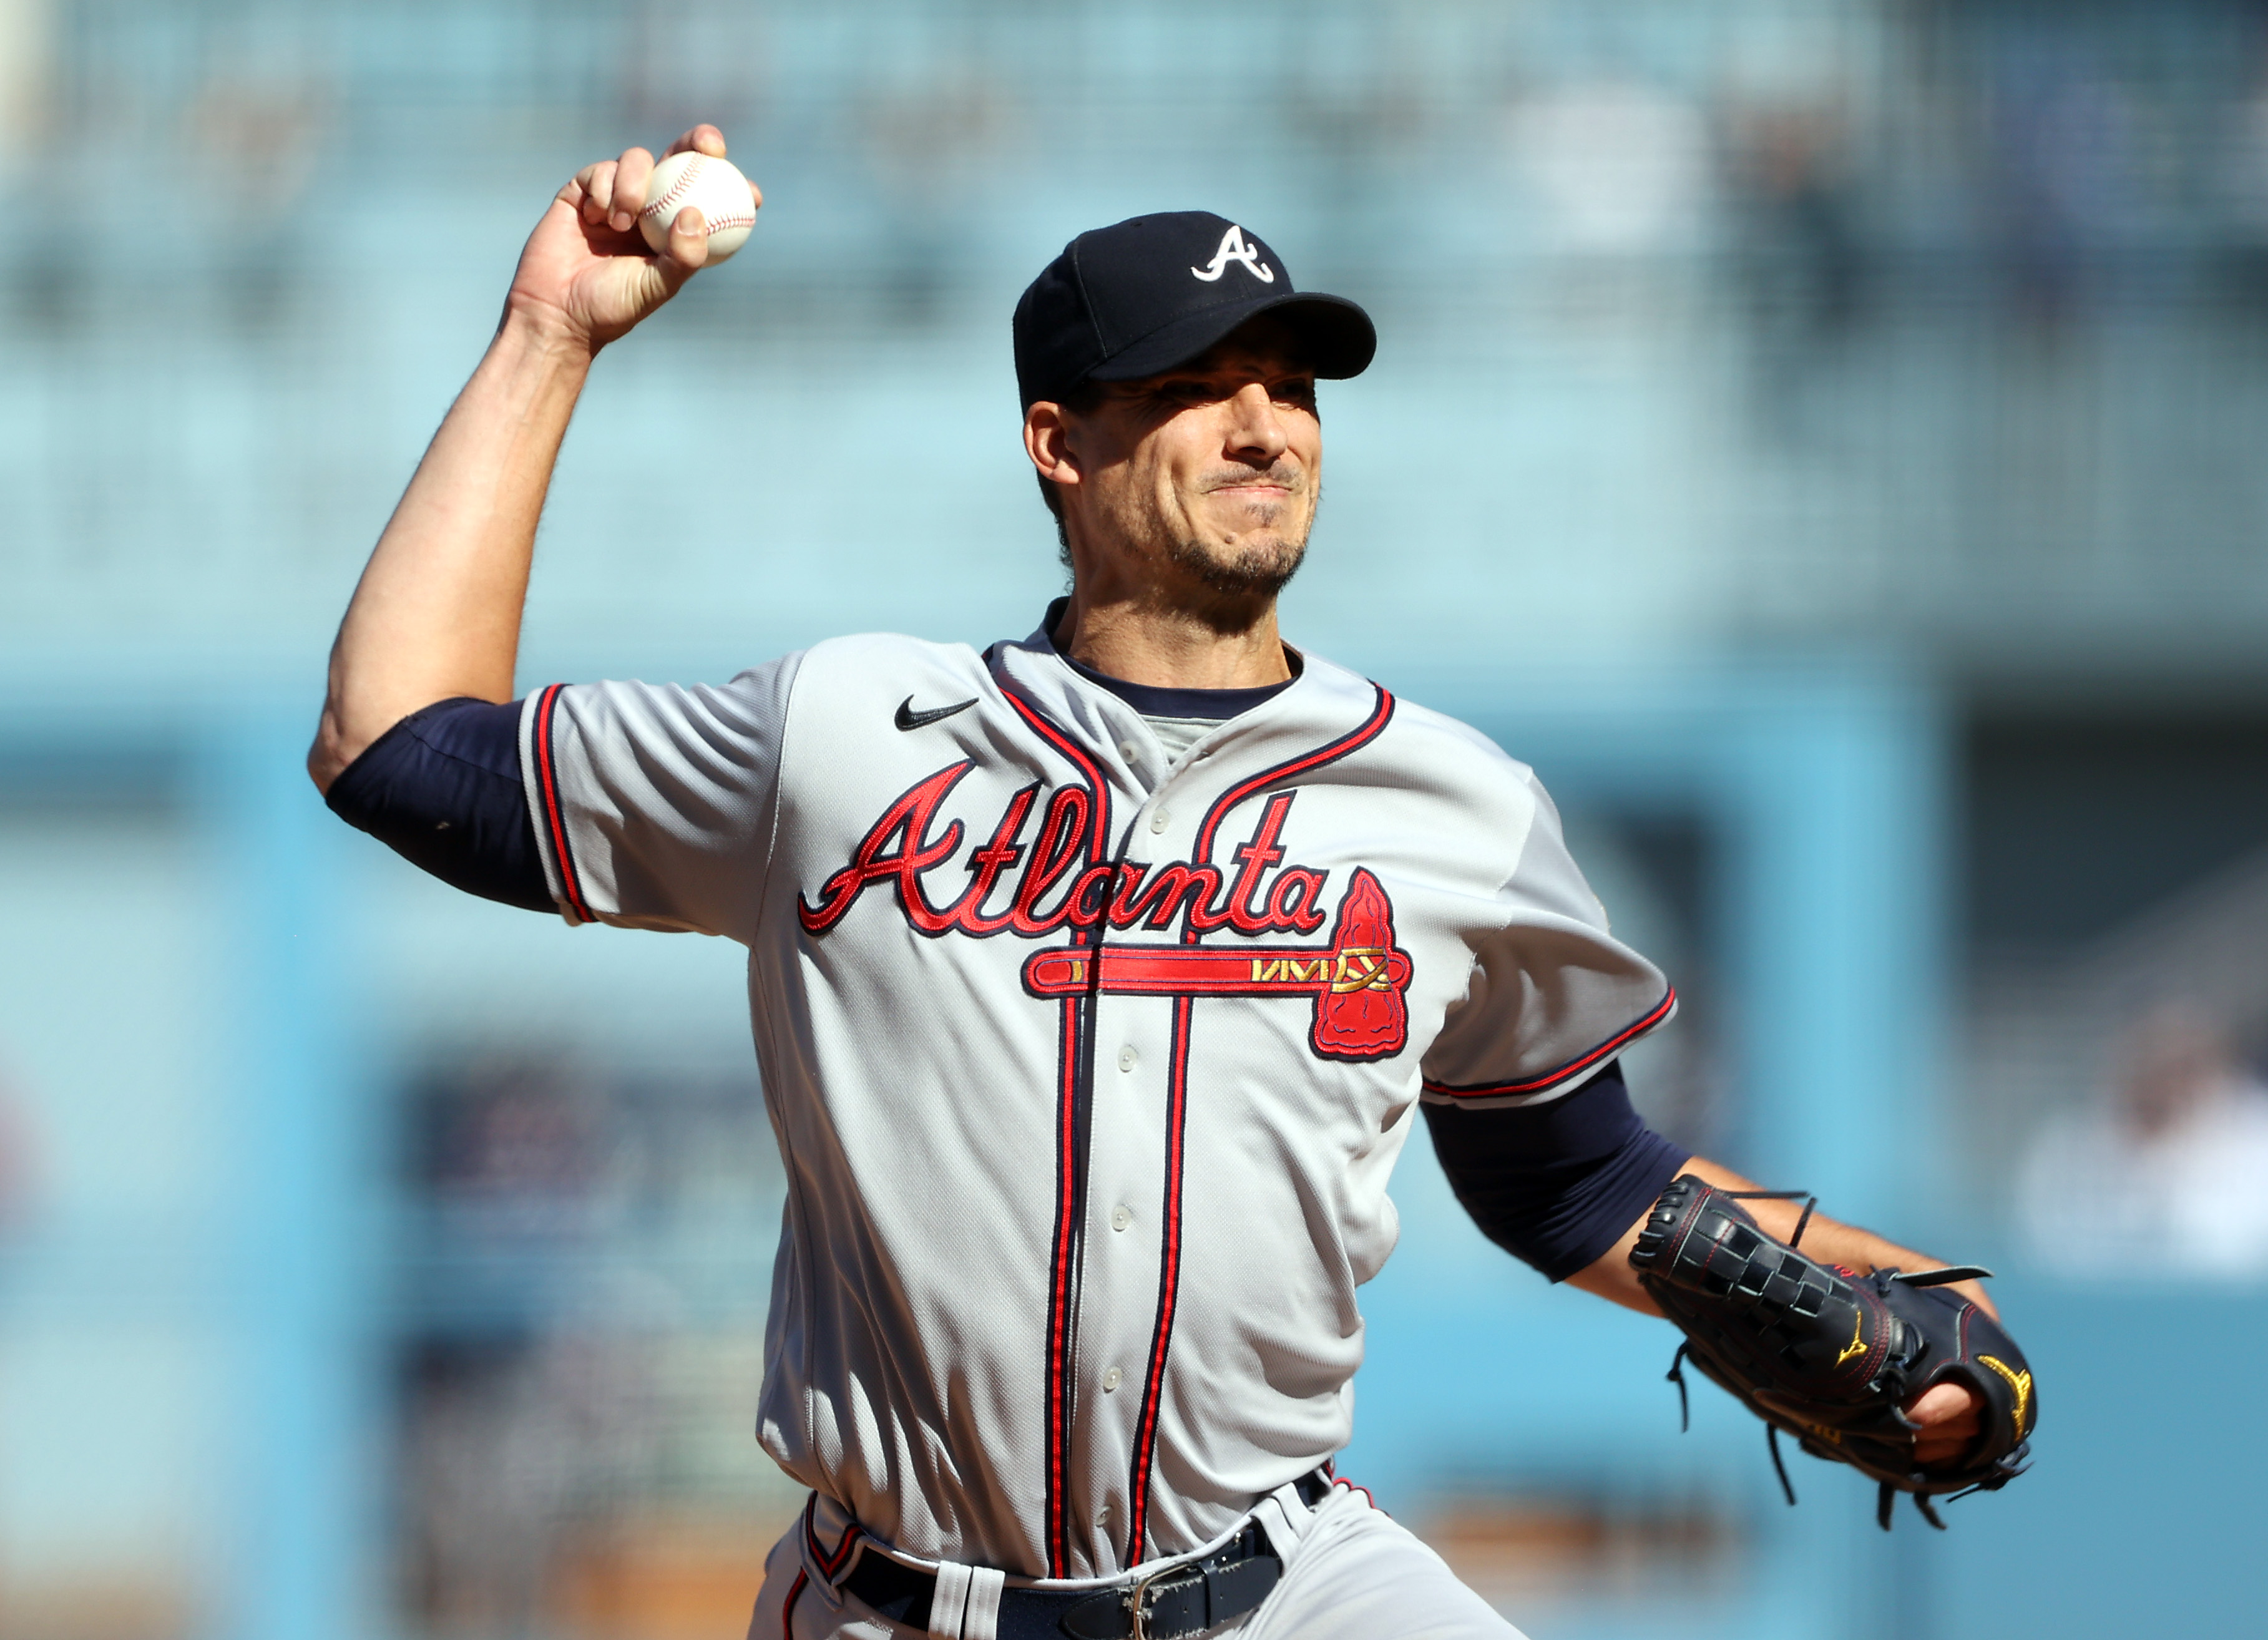 Starting pitcher Charlie Morton #50 of the Atlanta Braves pitches during the 1st inning of Game 3 of the National League Championship Series against the Los Angeles Dodgers at Dodger Stadium on October 19, 2021 in Los Angeles, California.